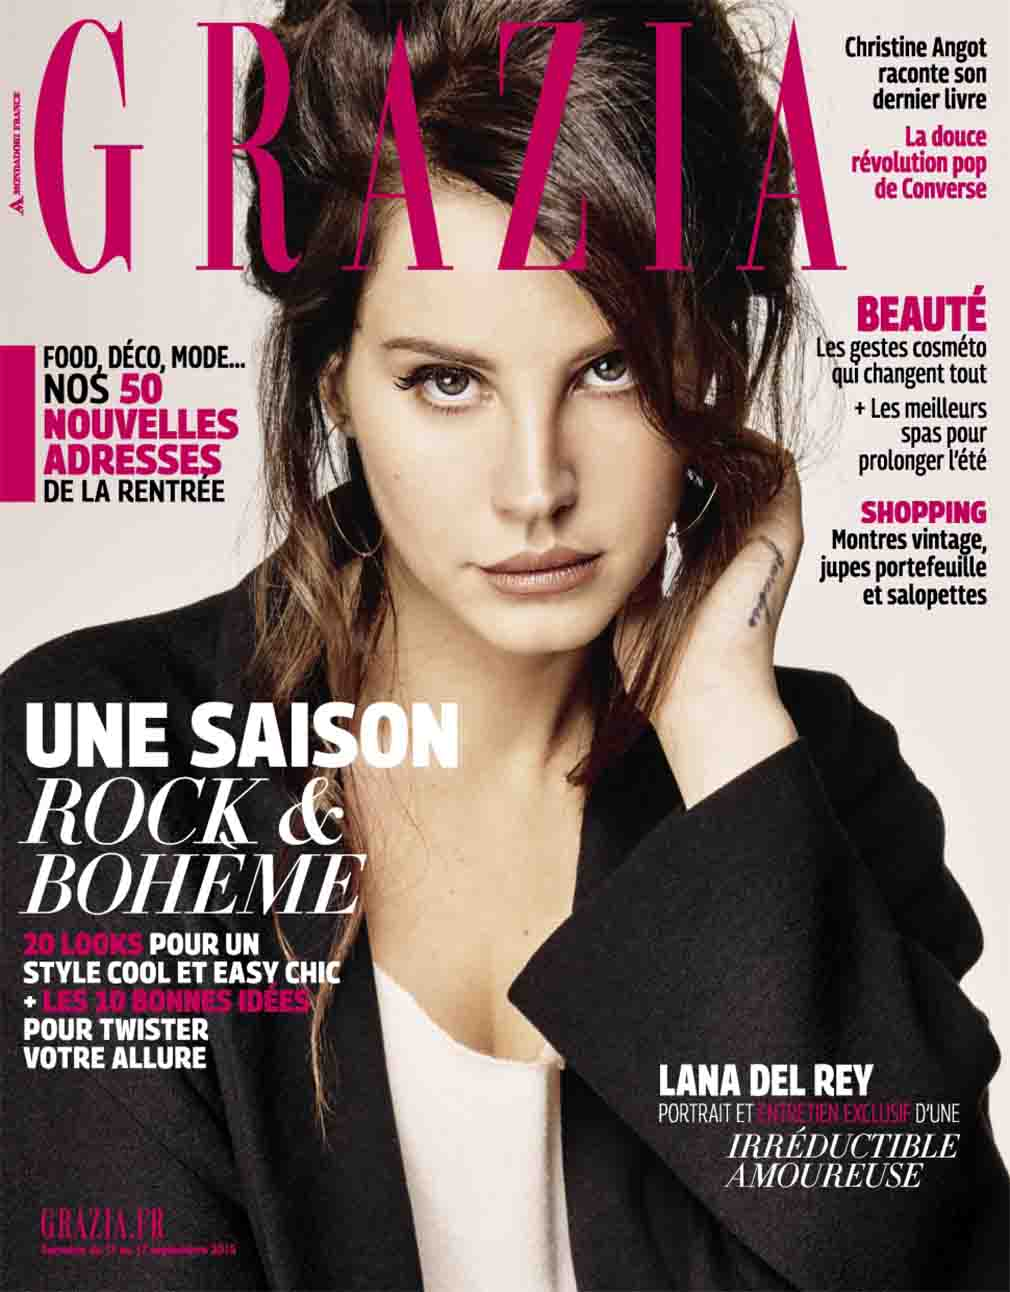 http://uupload.ir/files/j1wc_grazia_france_-_11_au_17_septembre_2015-1.jpg